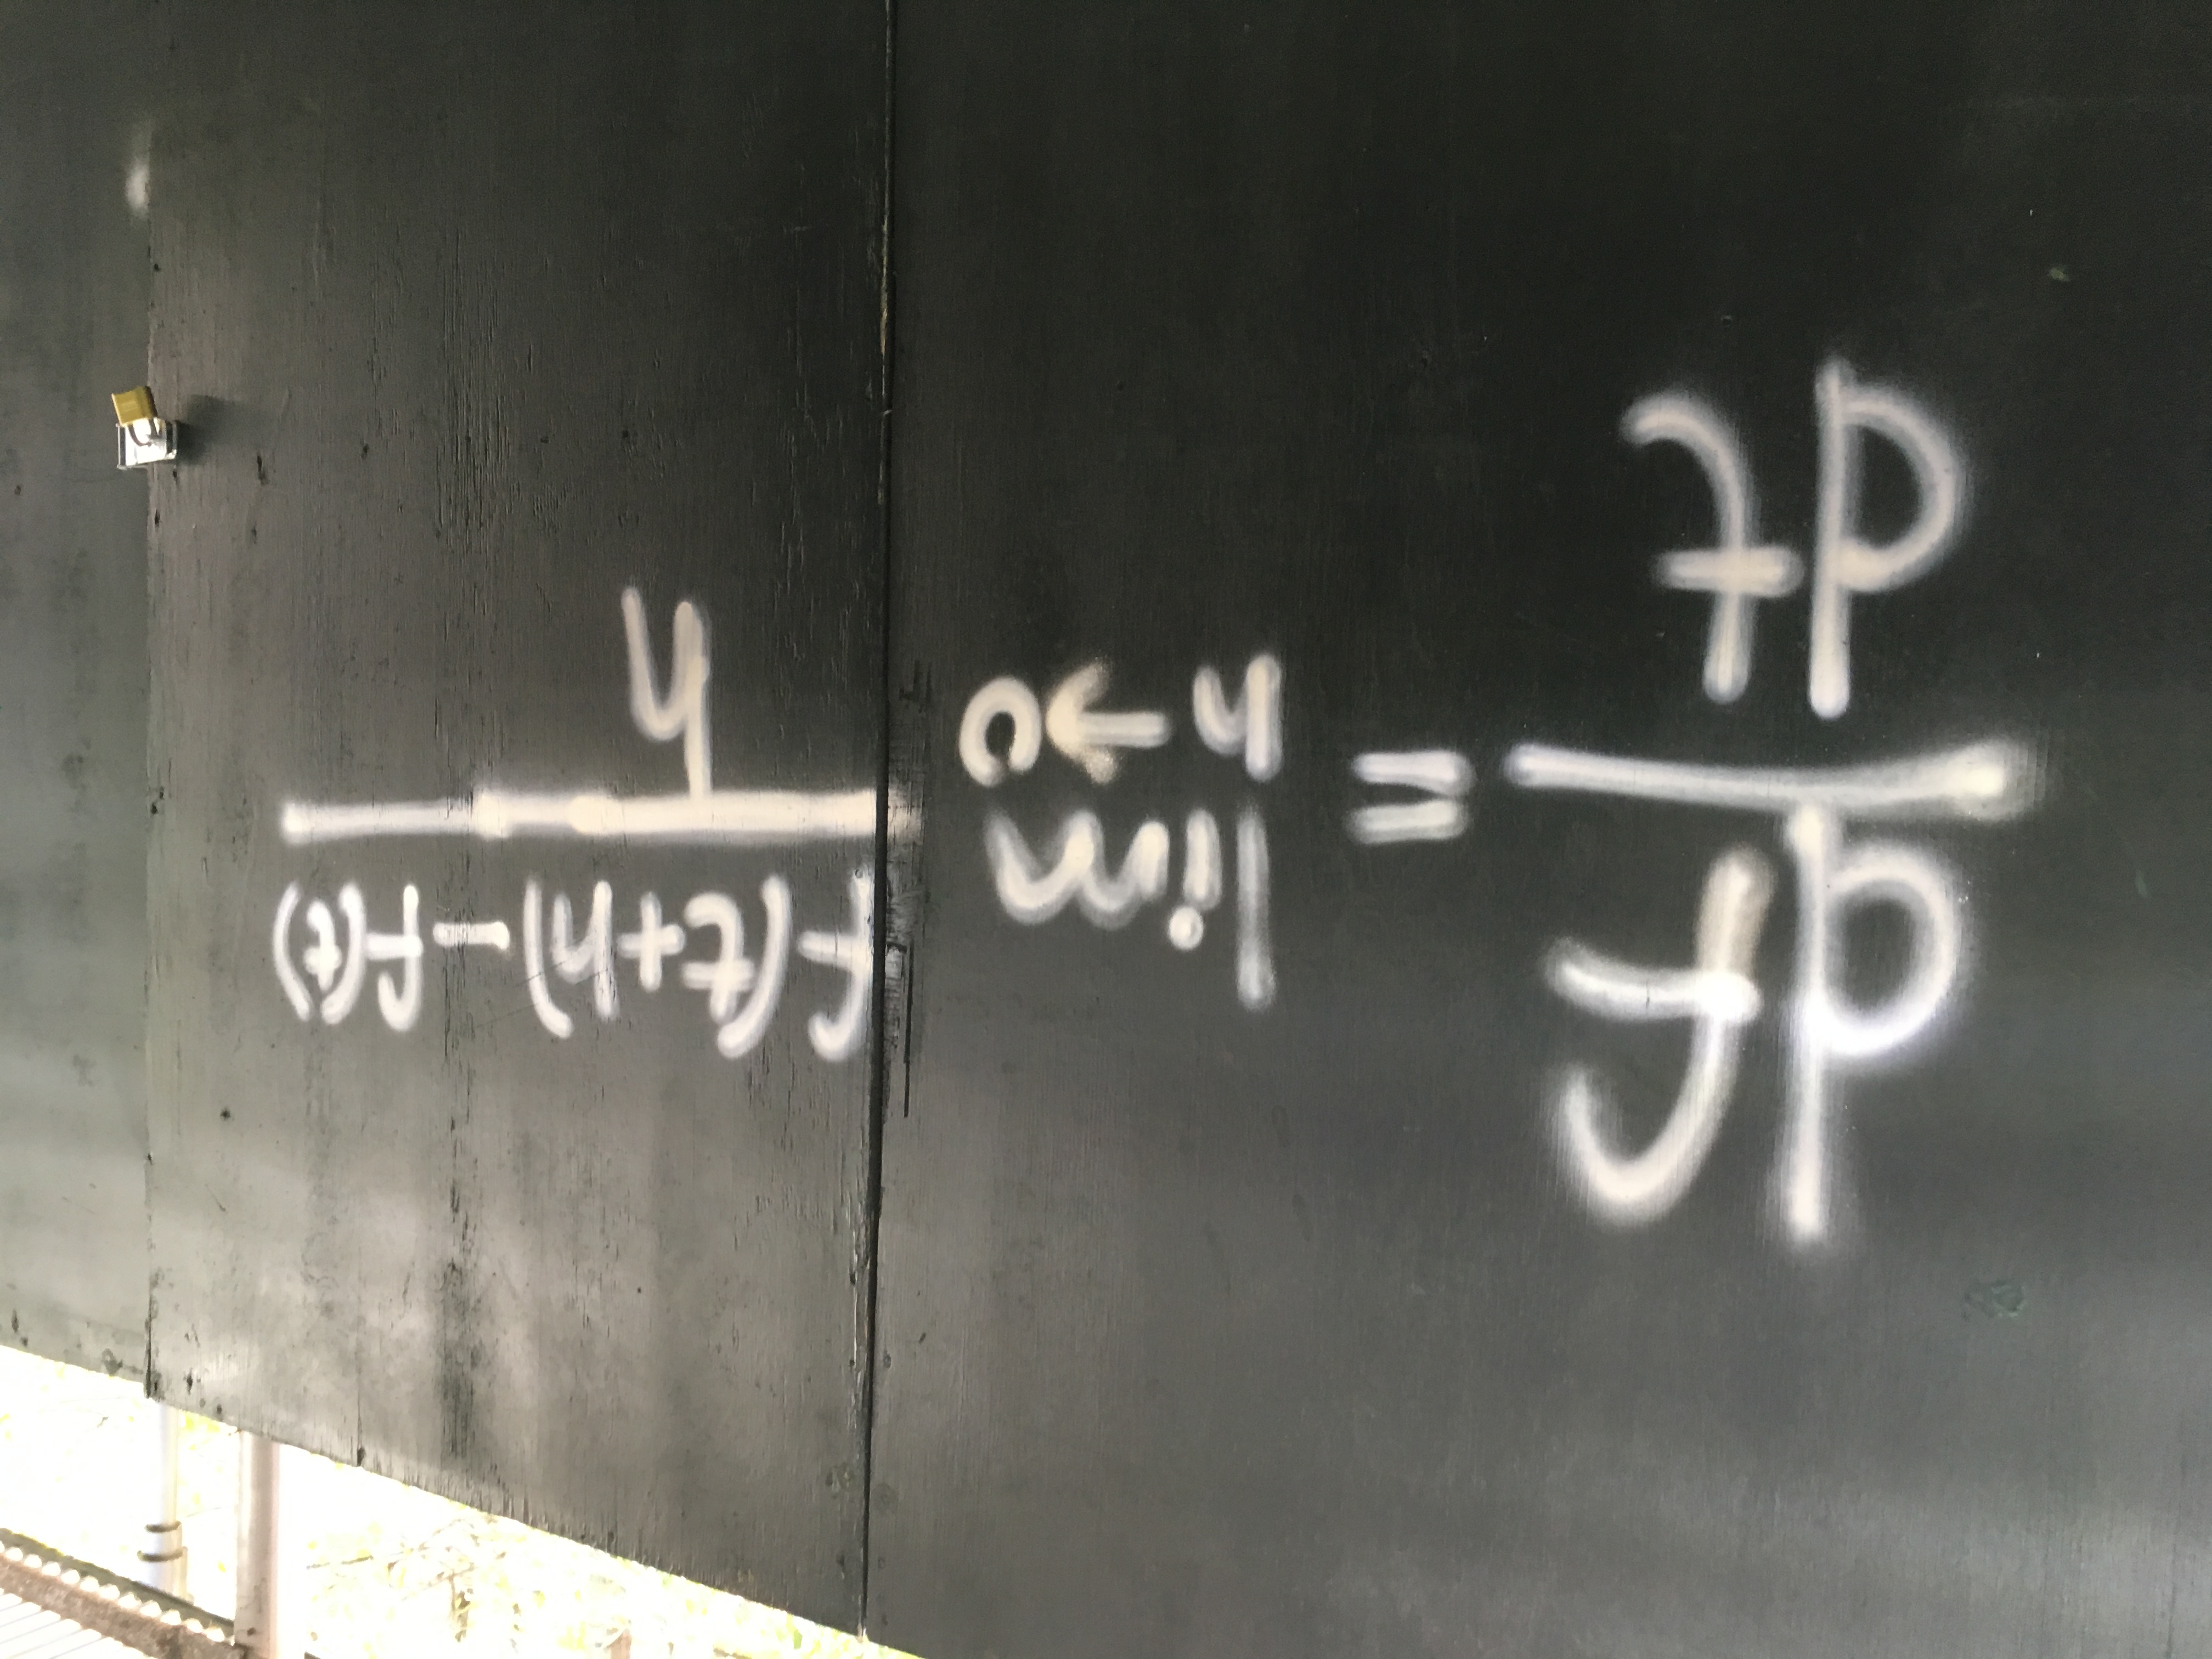 Mathematical Graffiti found in NYC